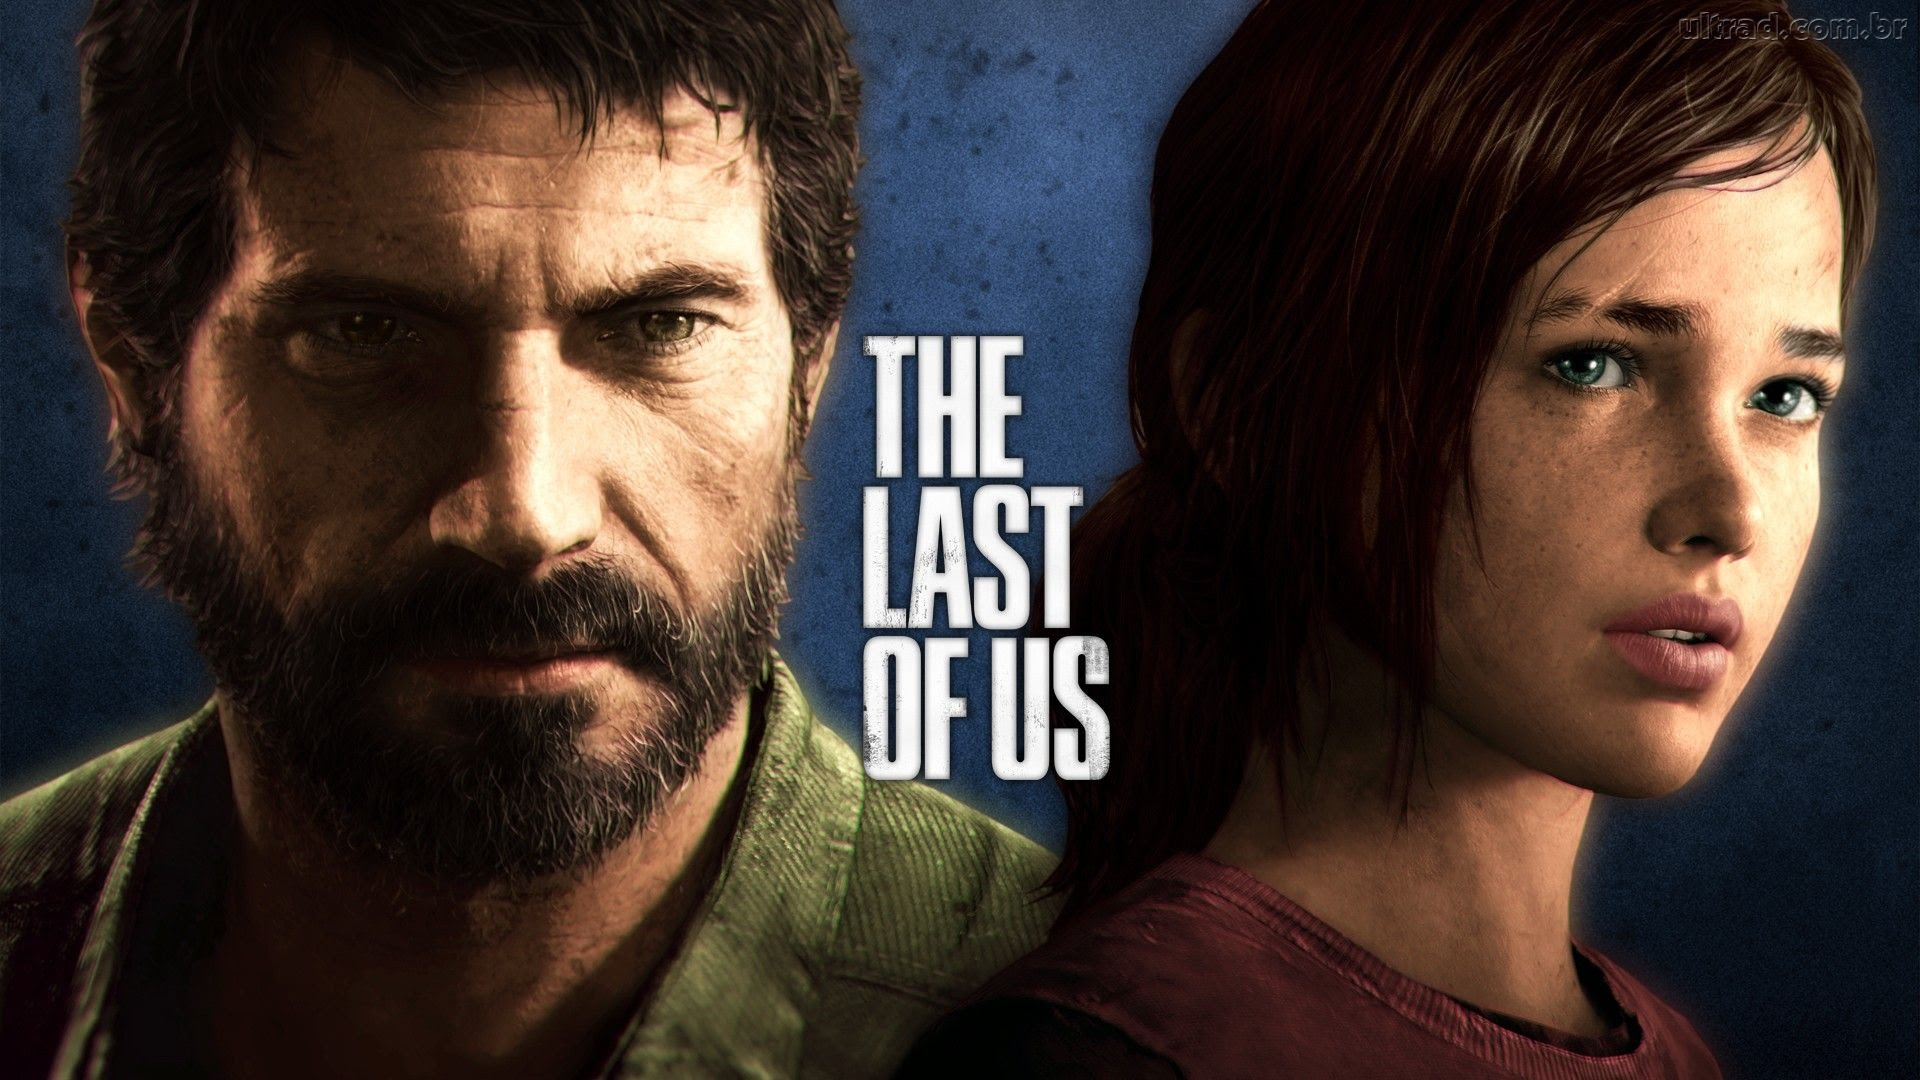 The Last of Us HBO TV Series Release Date, Trailer, Plot, Cast, and PlayStation Game Connection